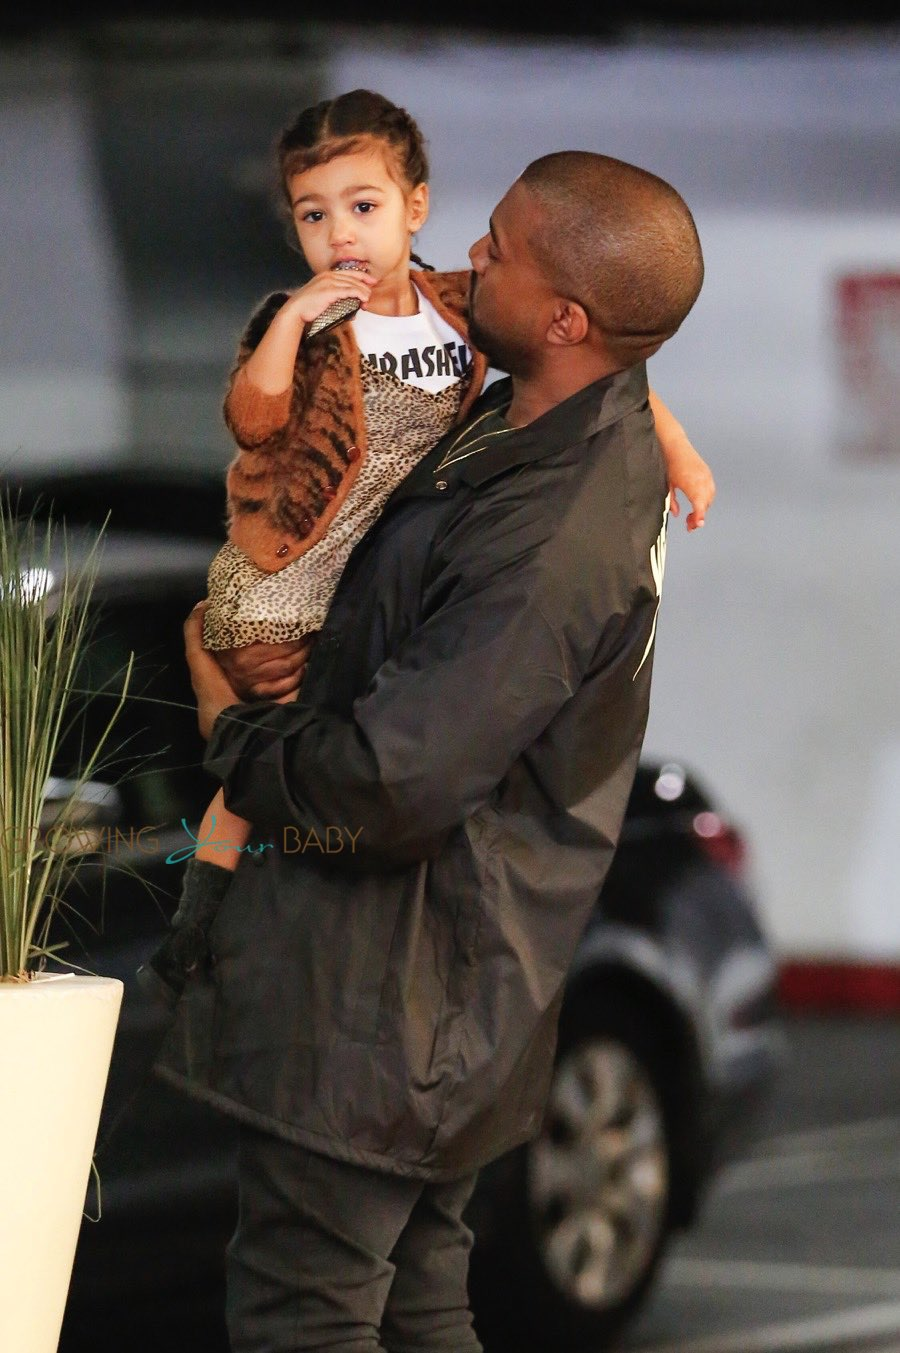 baac45bd98877 Kanye West Carries his daughter North West as they head in to the mall